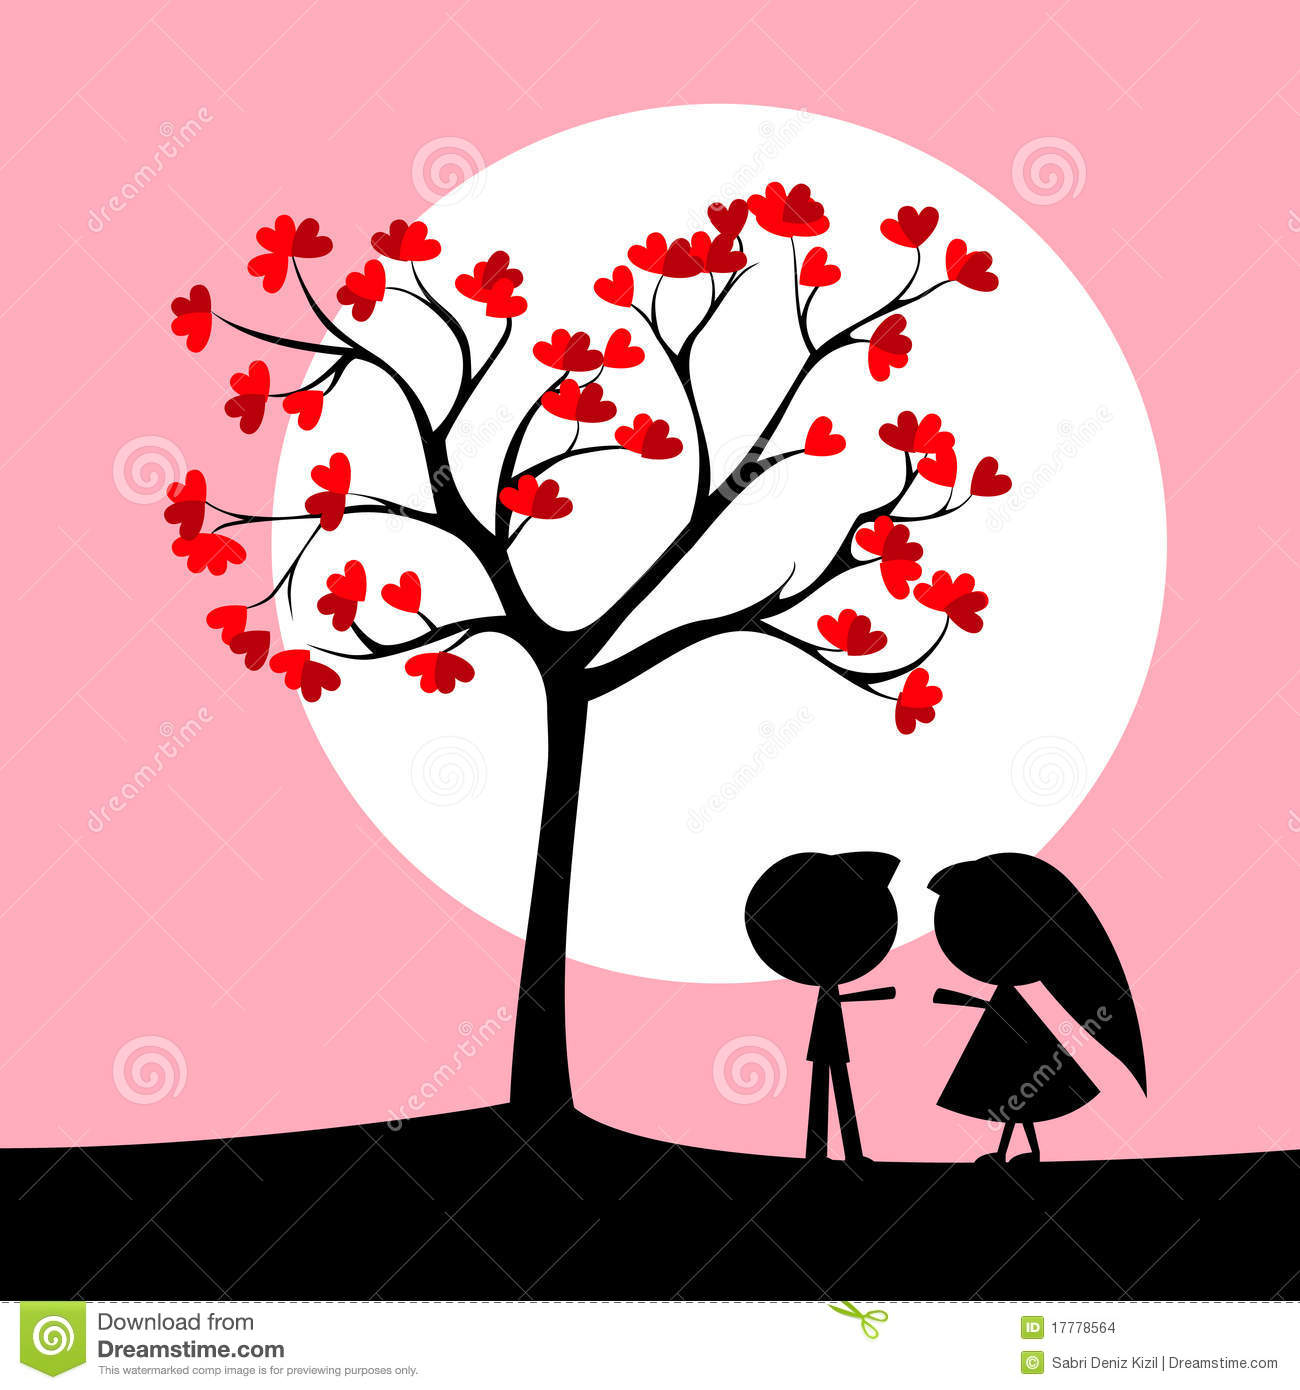 Couple under love tree stock vector. Illustration of image ...